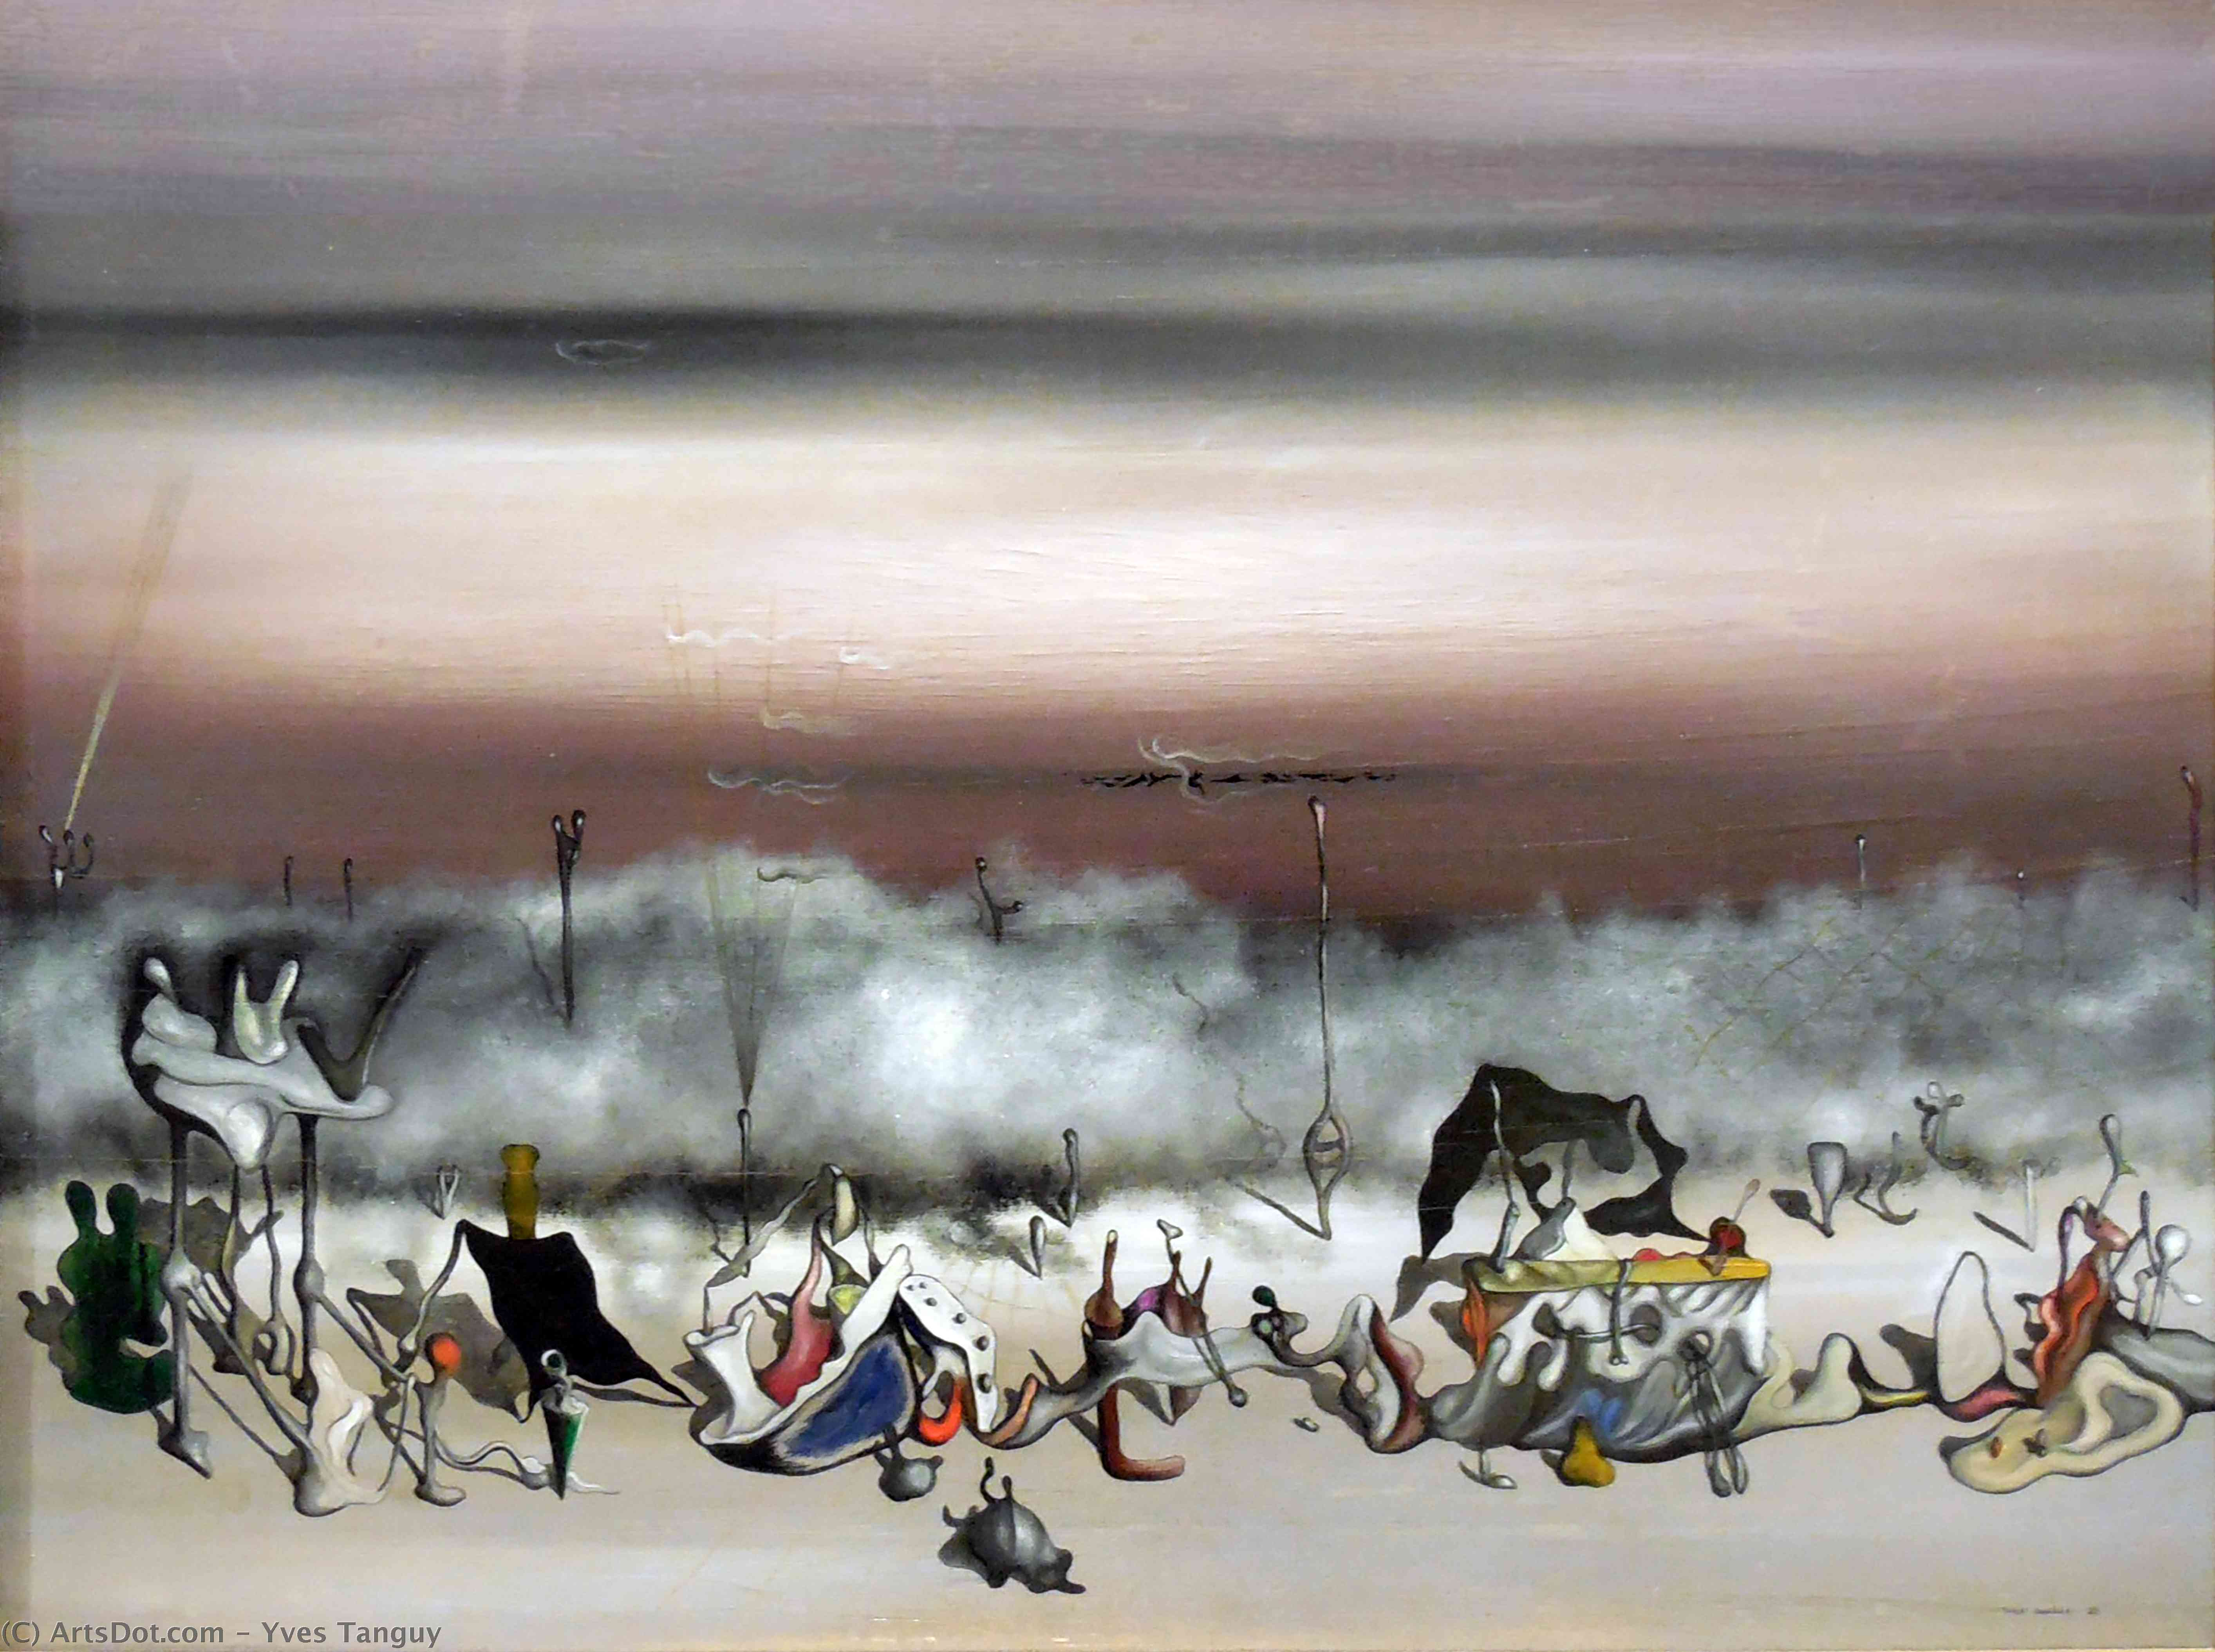 The Ribbon of Excess - Yves Tanguy